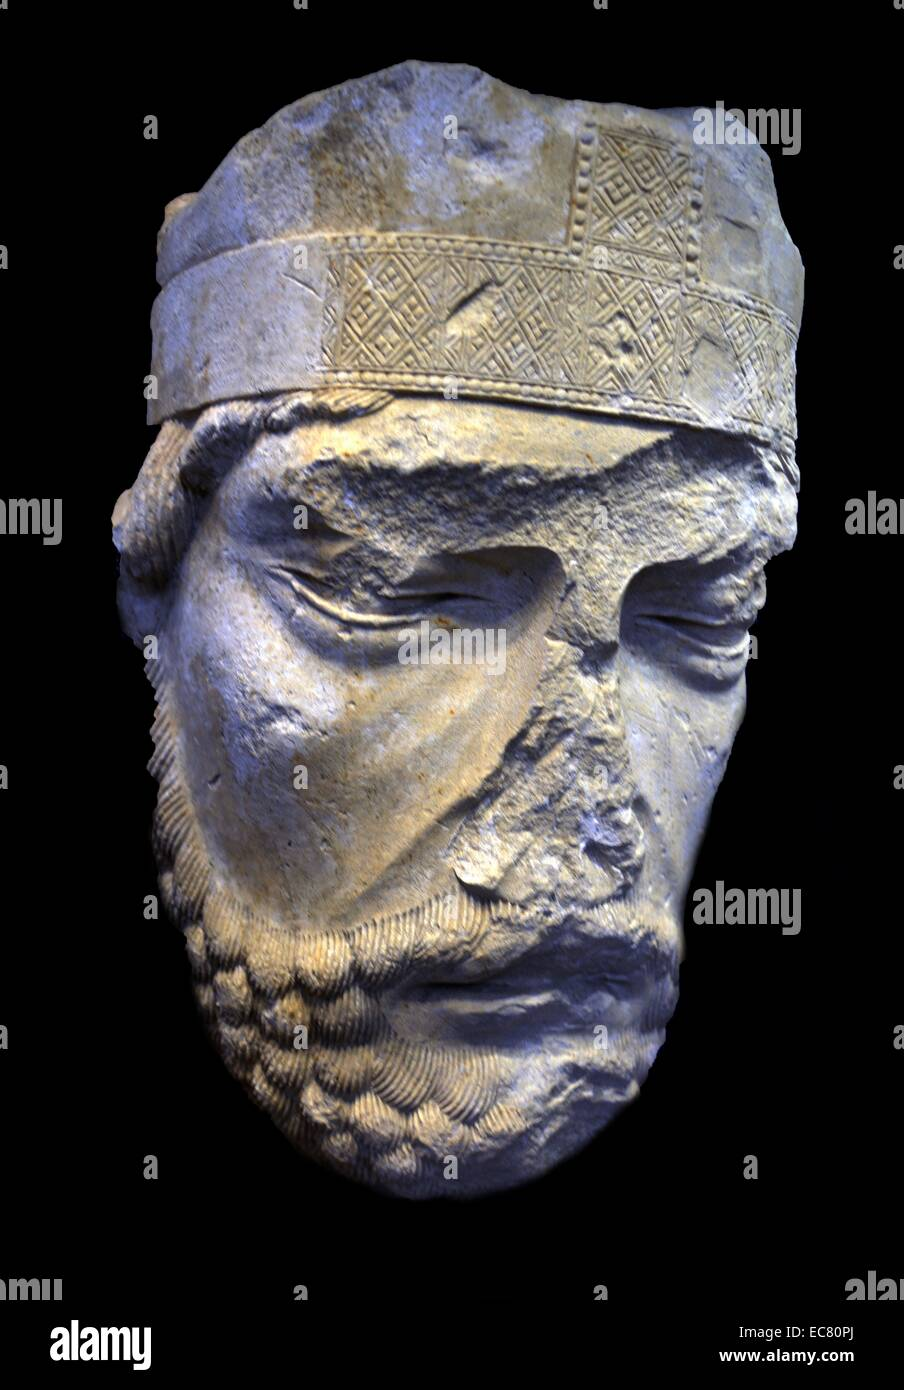 Stone statue of Head miter bishop by Picardy, third quarter of the 12th century. Stock Photo